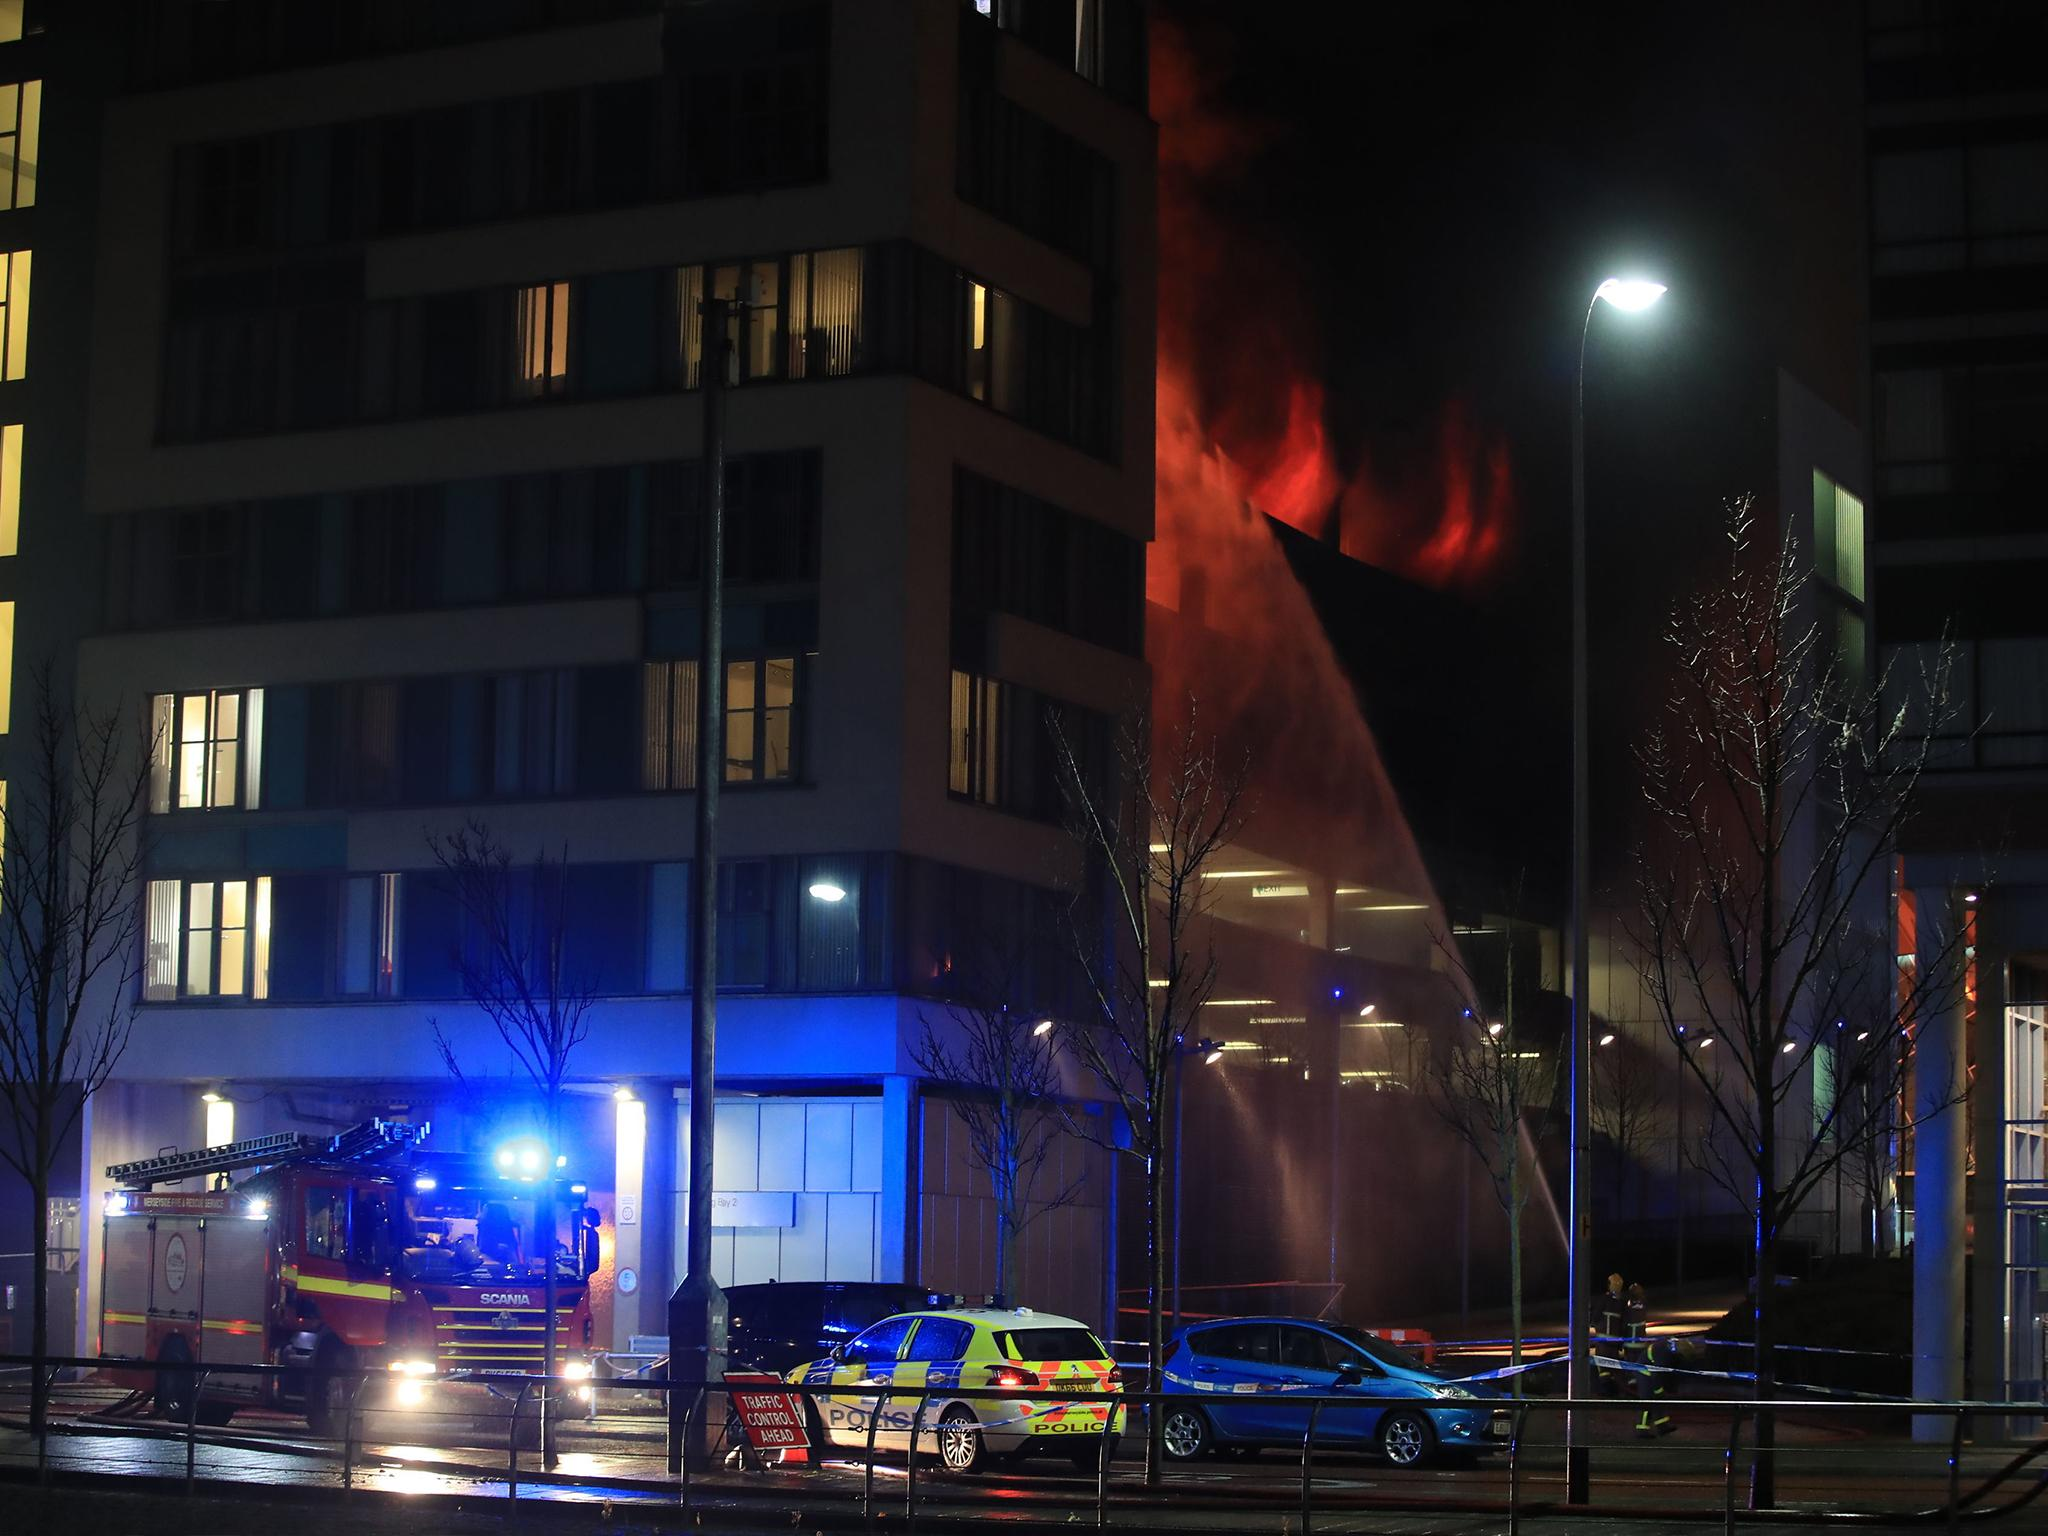 liverpool car park fire - latest news, breaking stories and comment